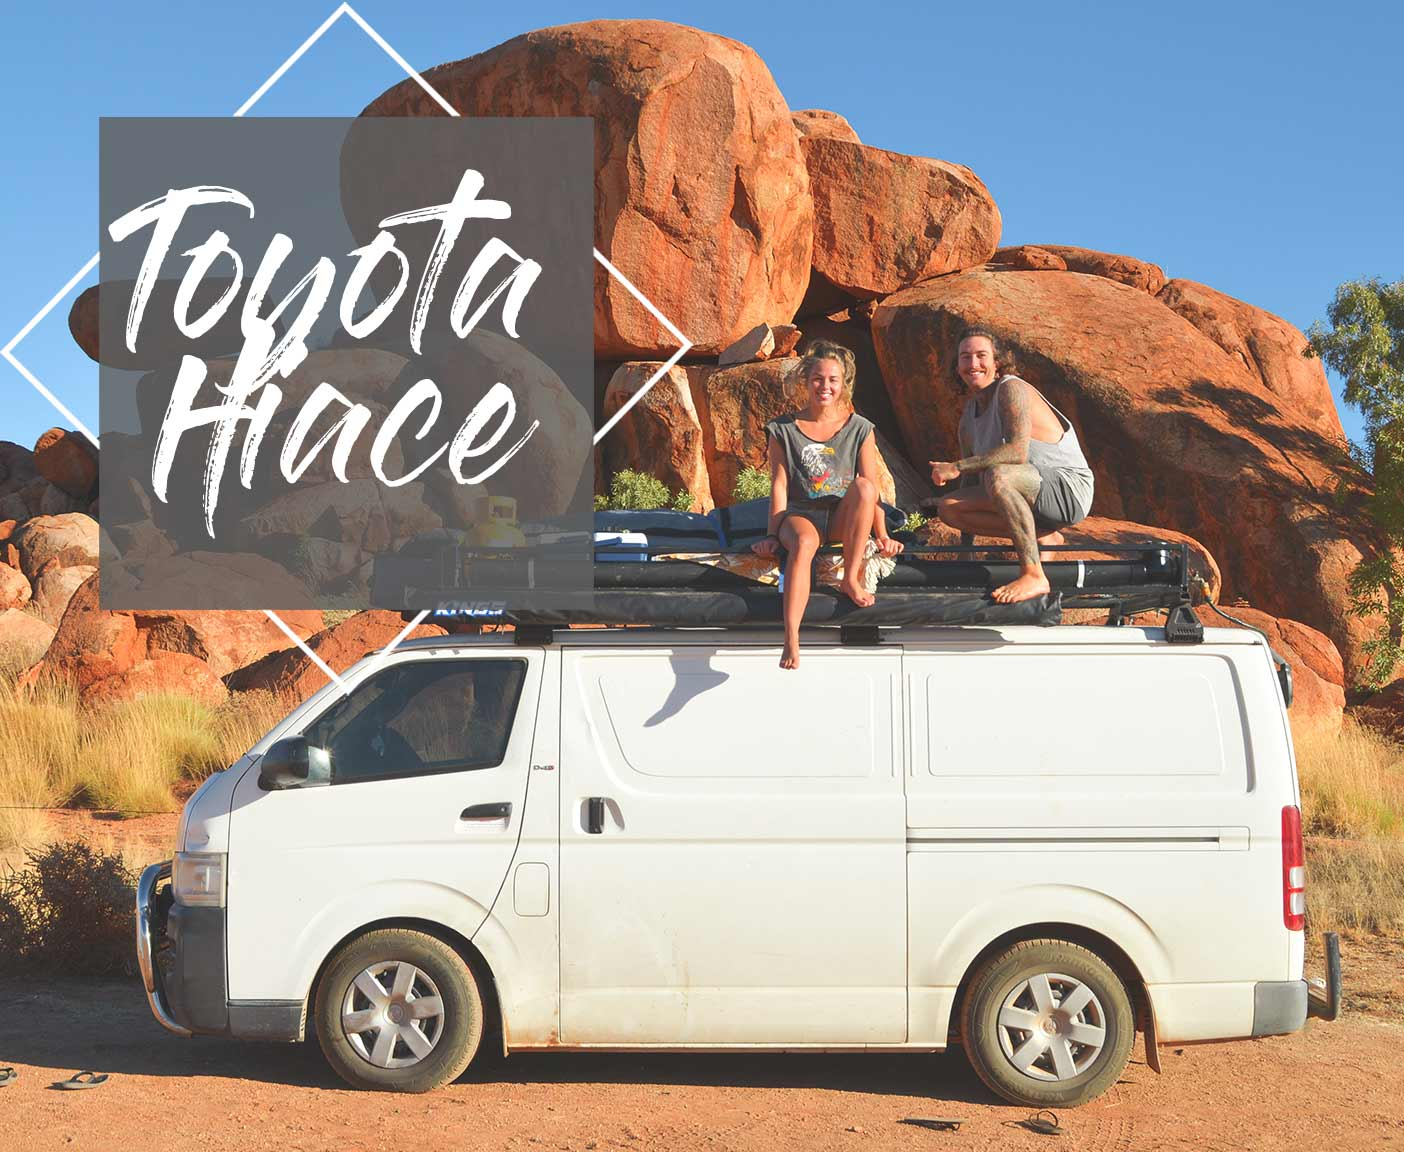 Toyota Hiace Van - a tiny rolling home is traveling Australia